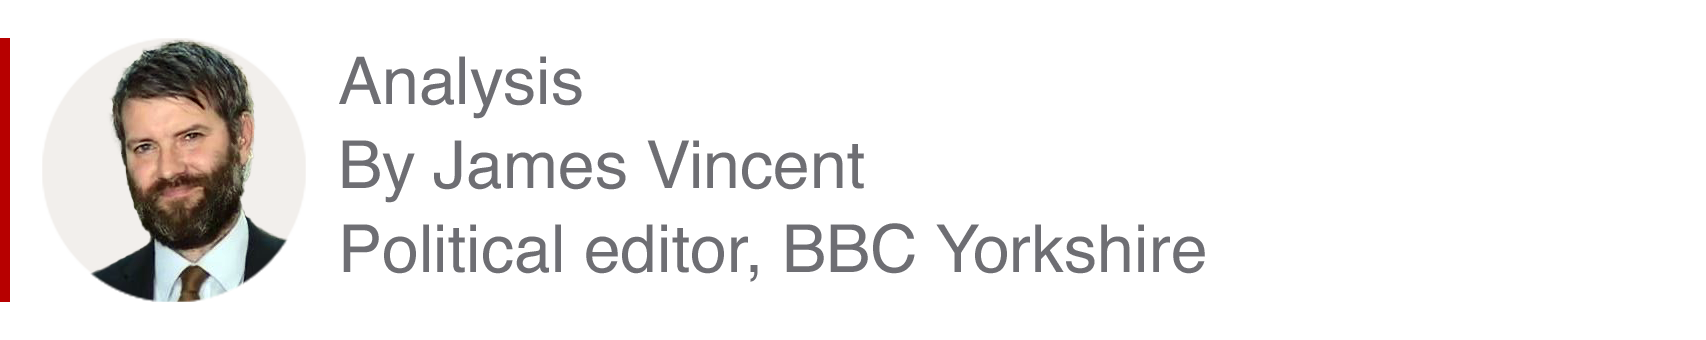 Analysis box by James Vincent, Political editor, BBC Yorkshire